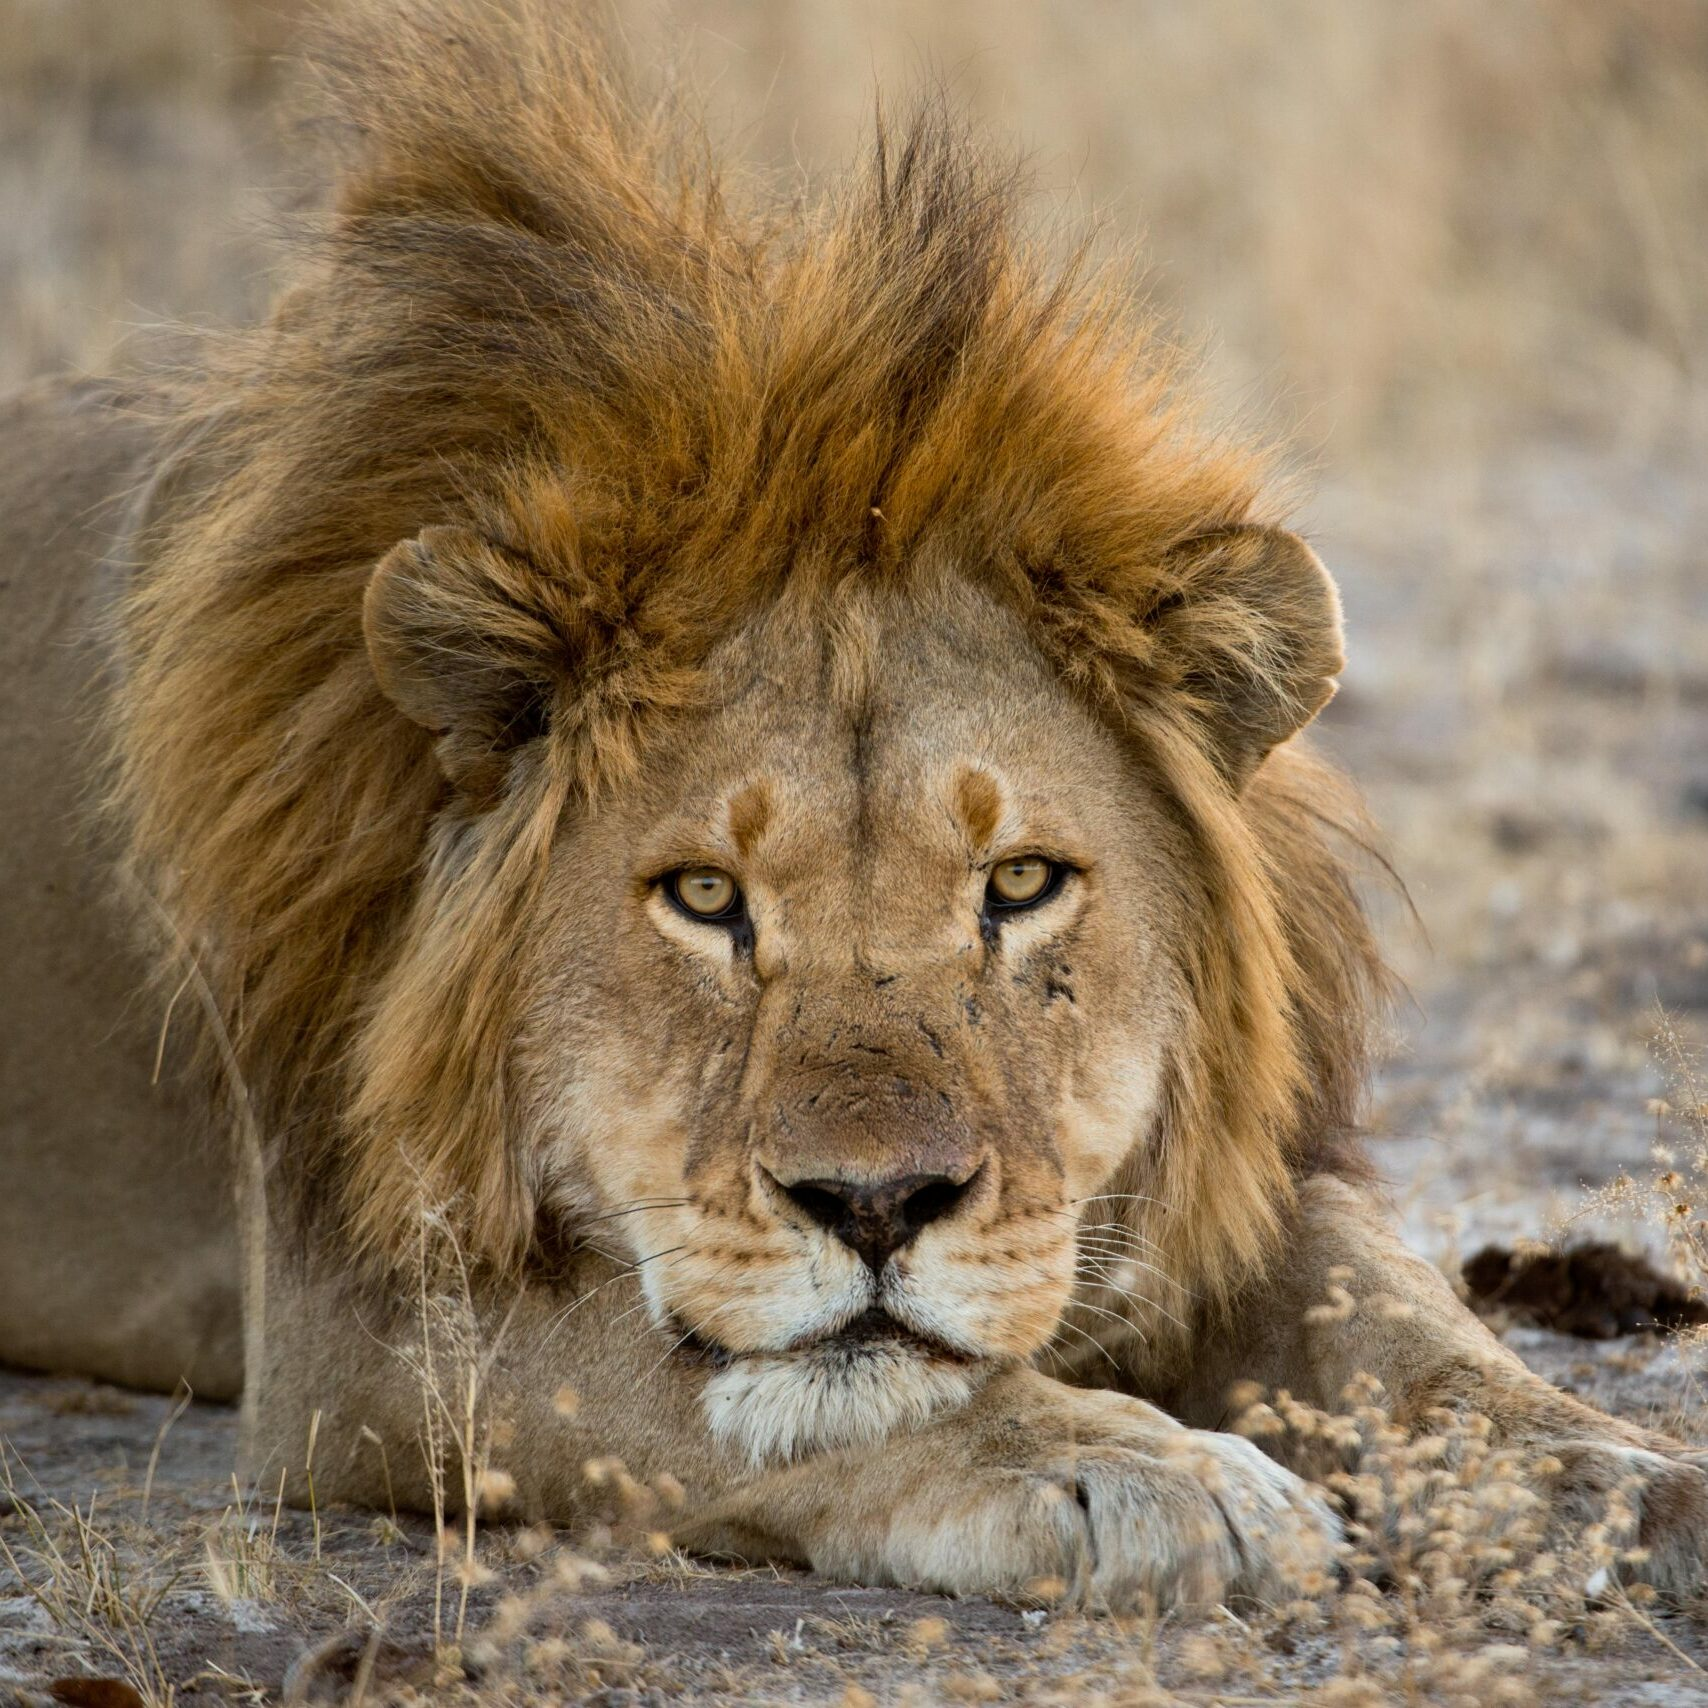 Lion resting in the wild